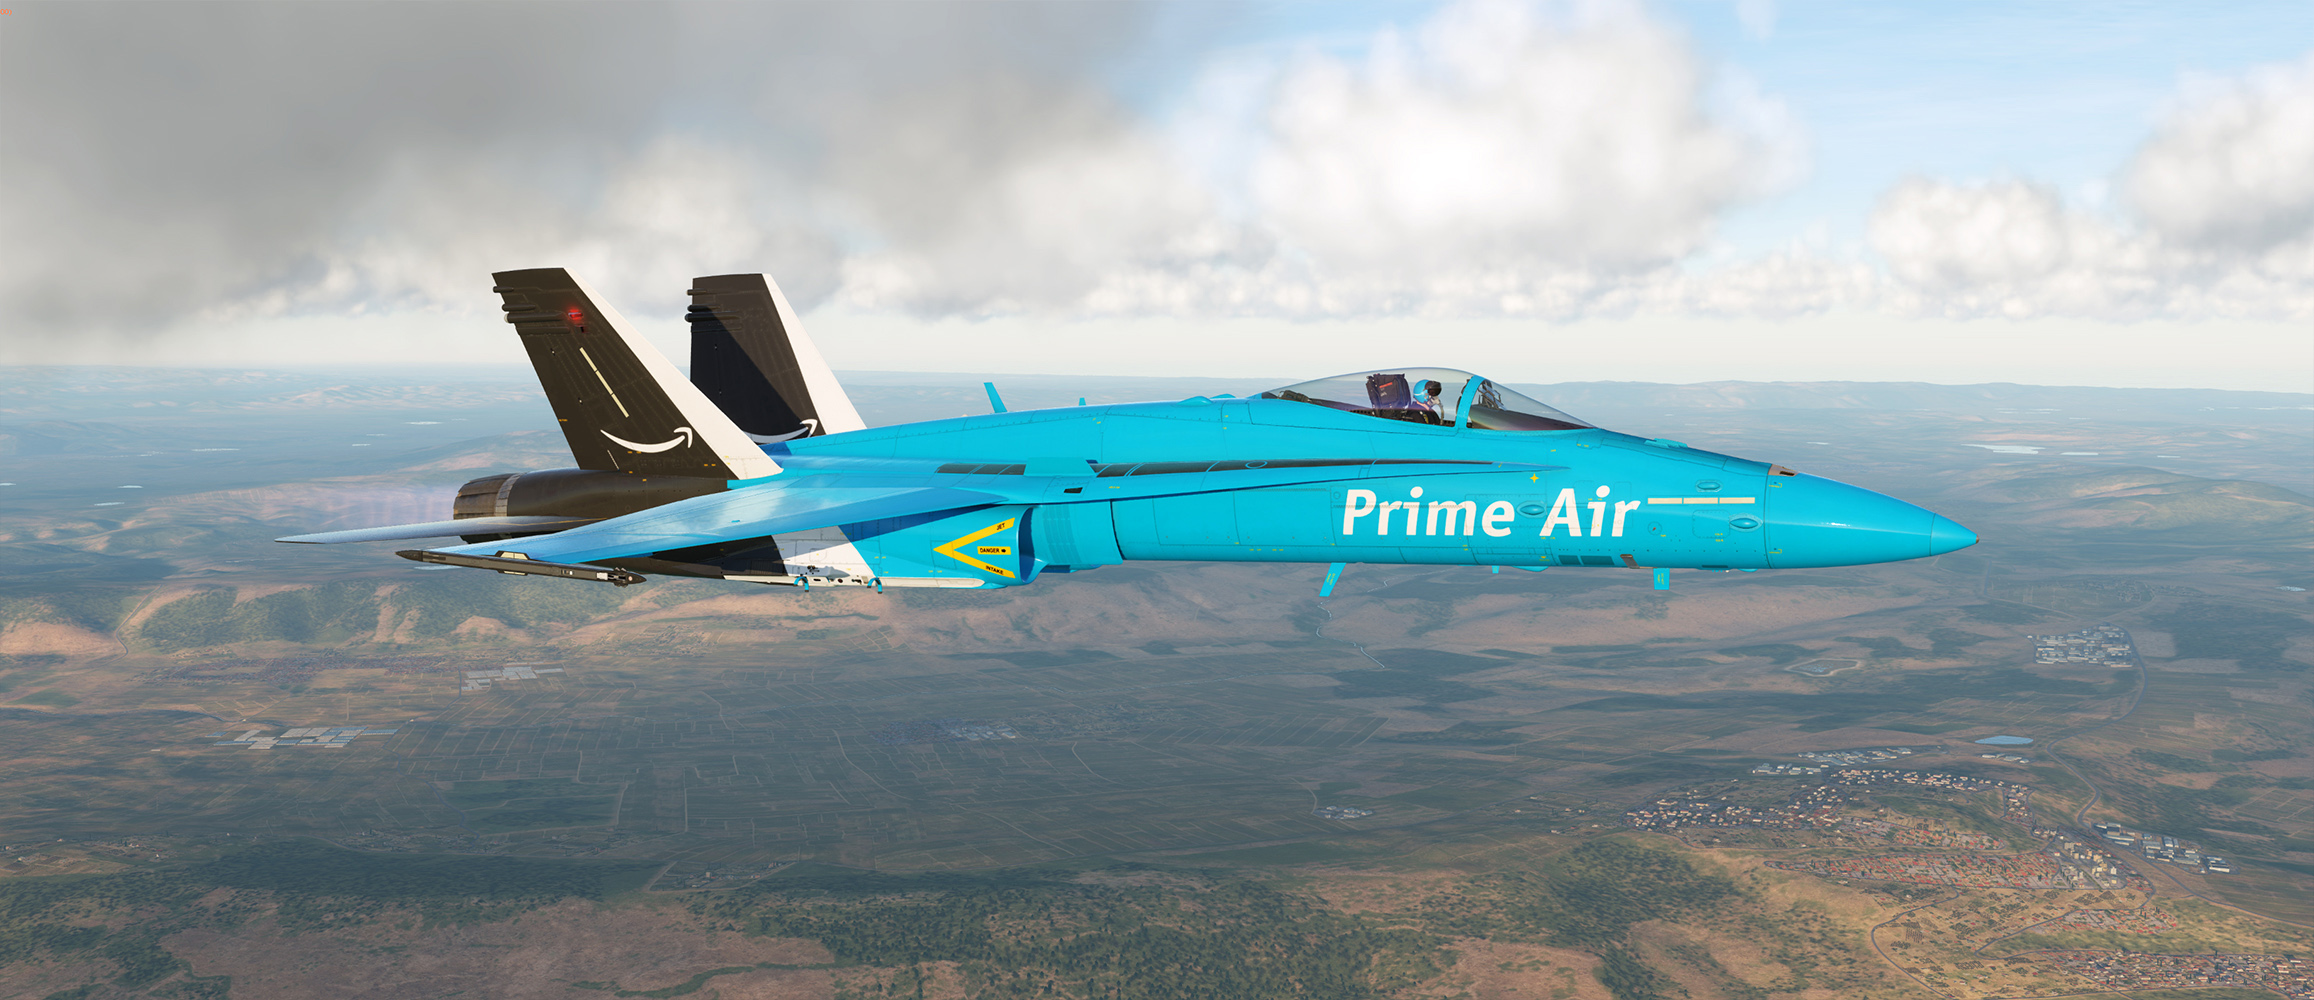 F-18 Racing Livery: Prime Air